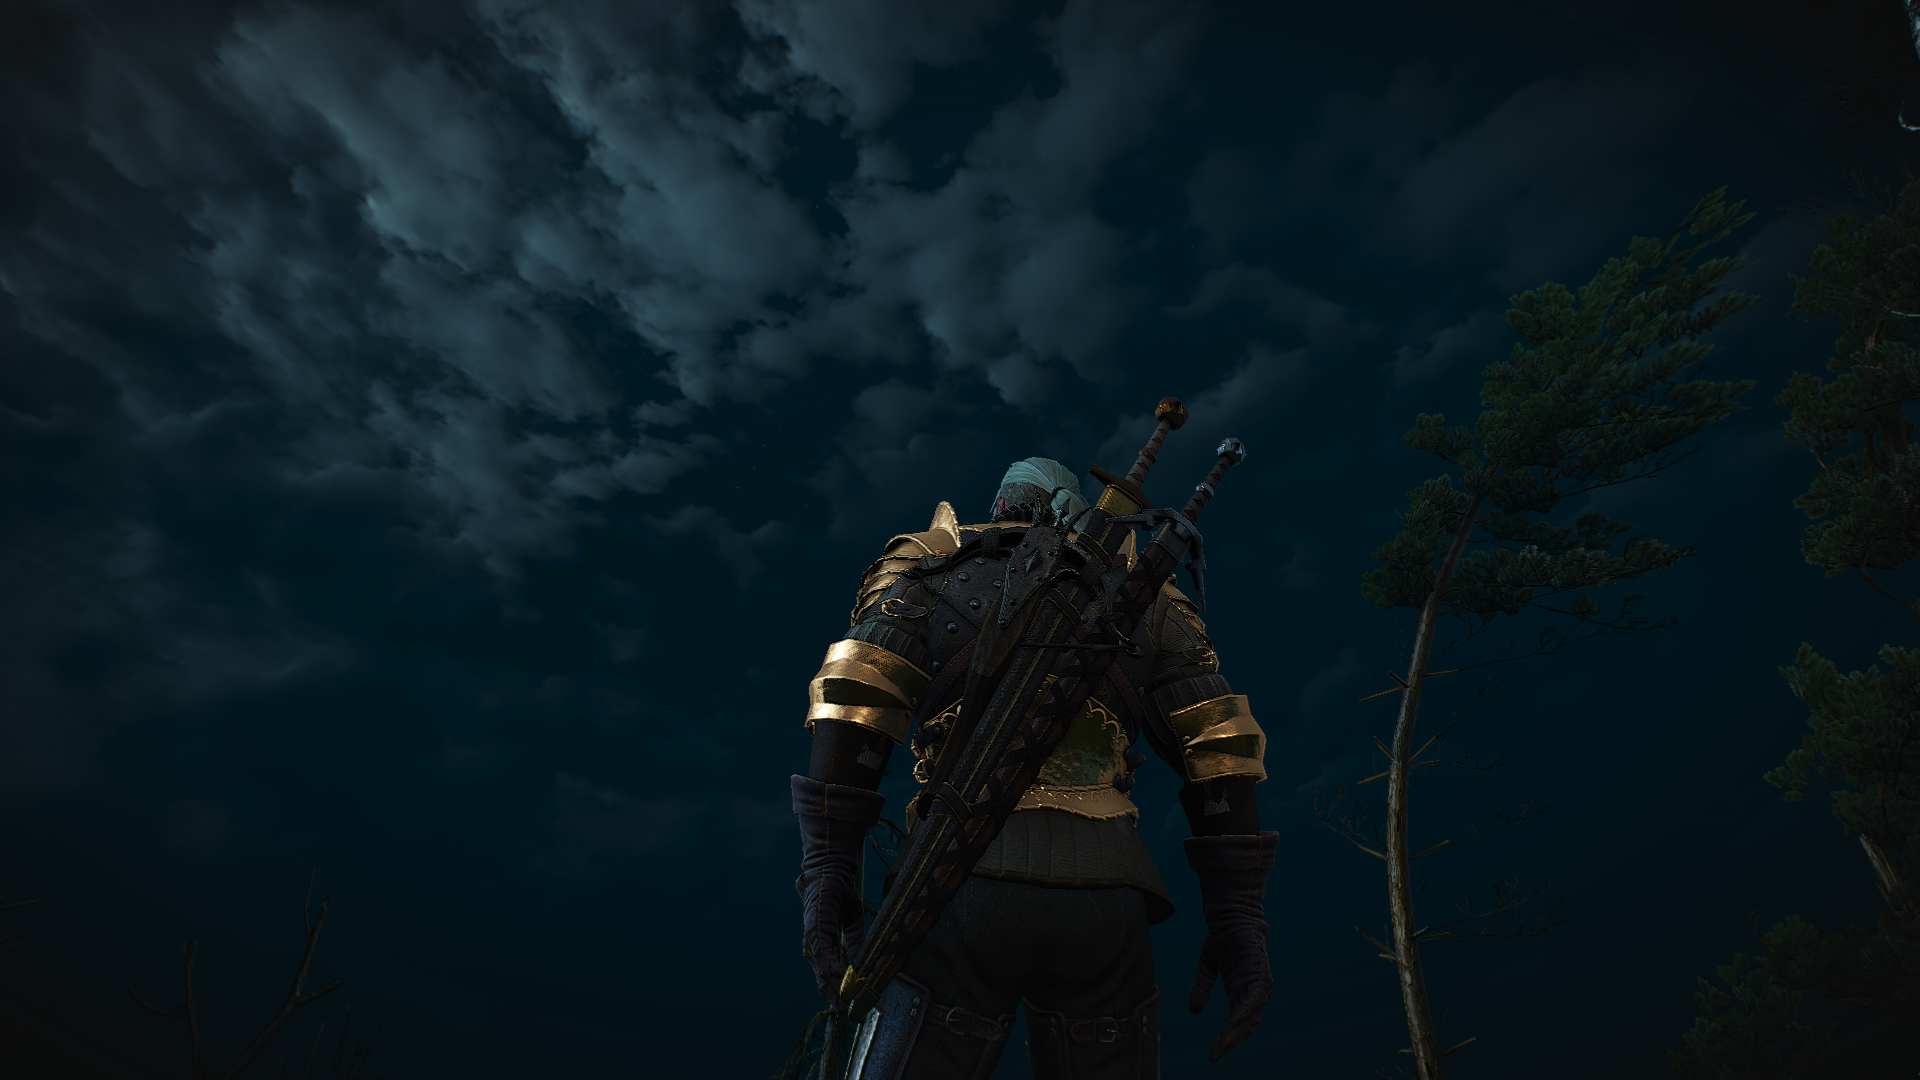 The Witcher 3 15.10.2018 23_27_26.png - Witcher 3: Wild Hunt, the